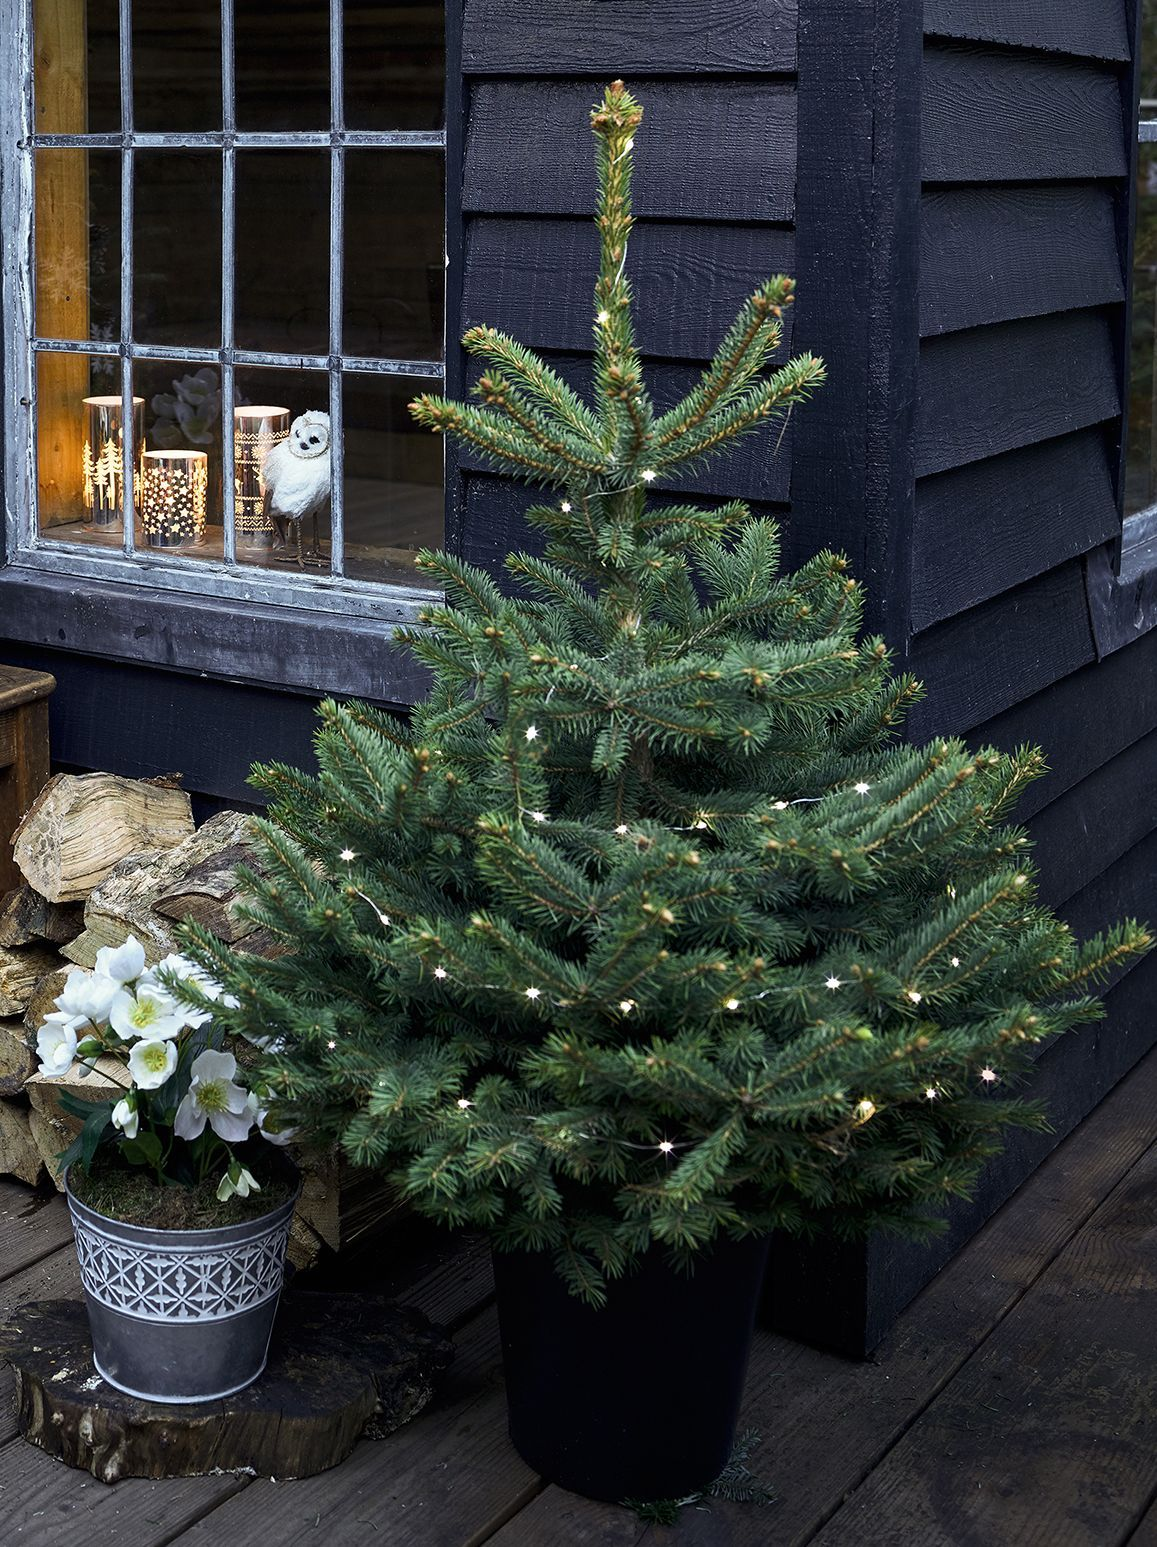 How to care for your potted Christmas tree | Potted christmas trees, Christmas tree care, Live ...